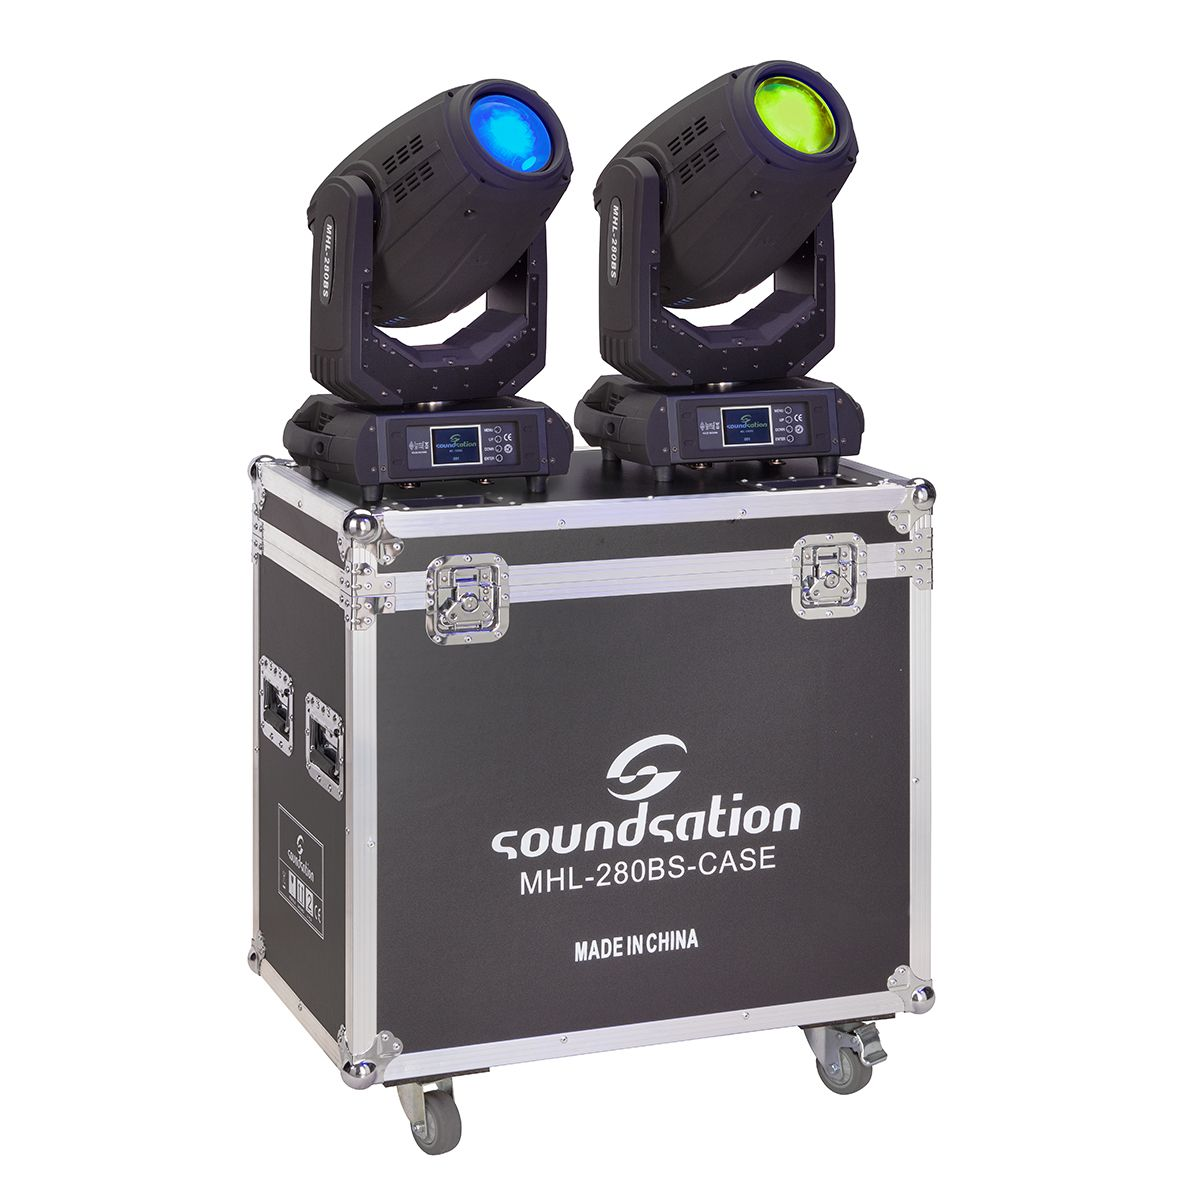 SOUNDSATION MHL-280BS SET - Set 2 Teste Mobili Beam&Spot 280W